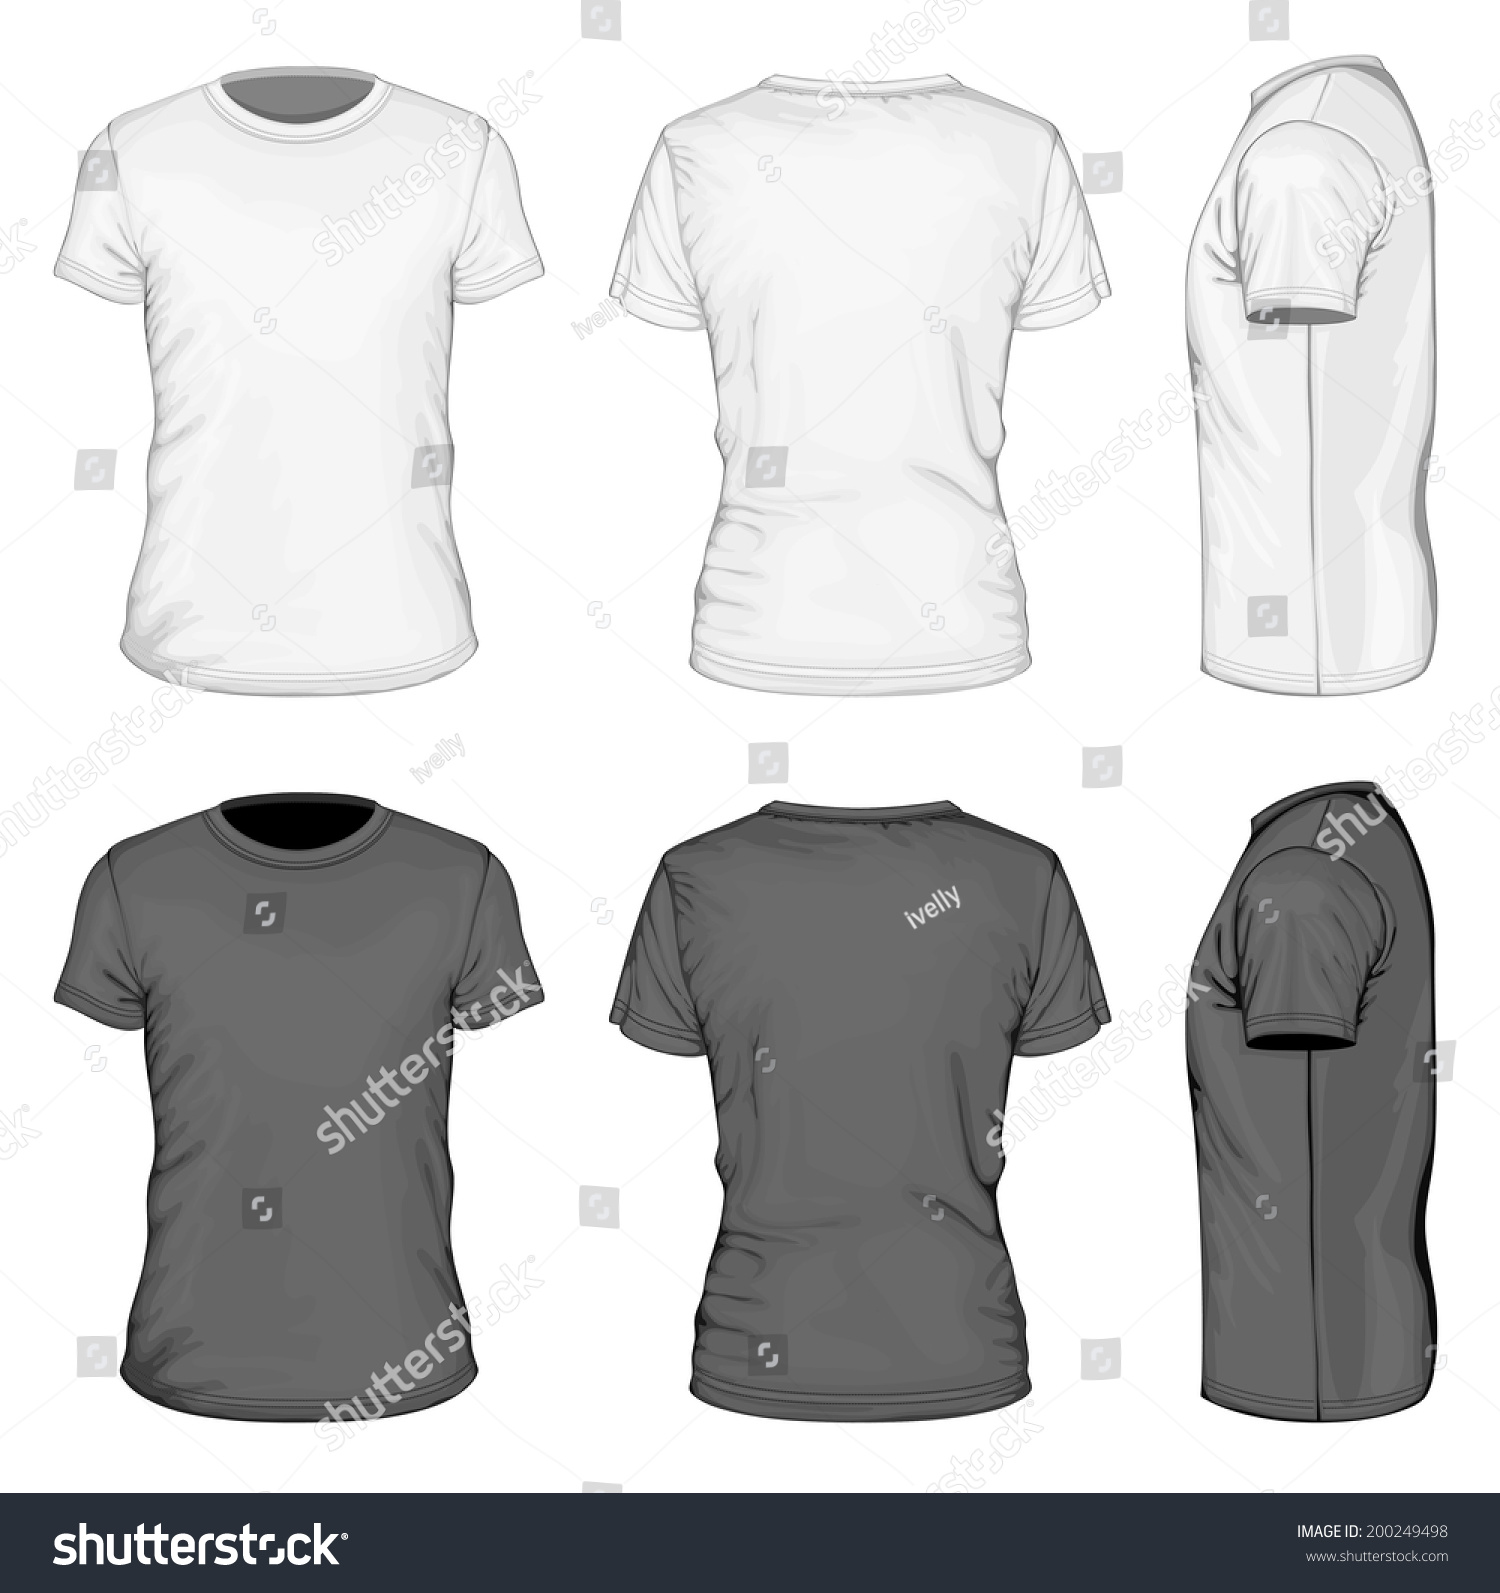 Black t shirt design template - Men S White And Black Short Sleeve T Shirt Design Templates Front Back